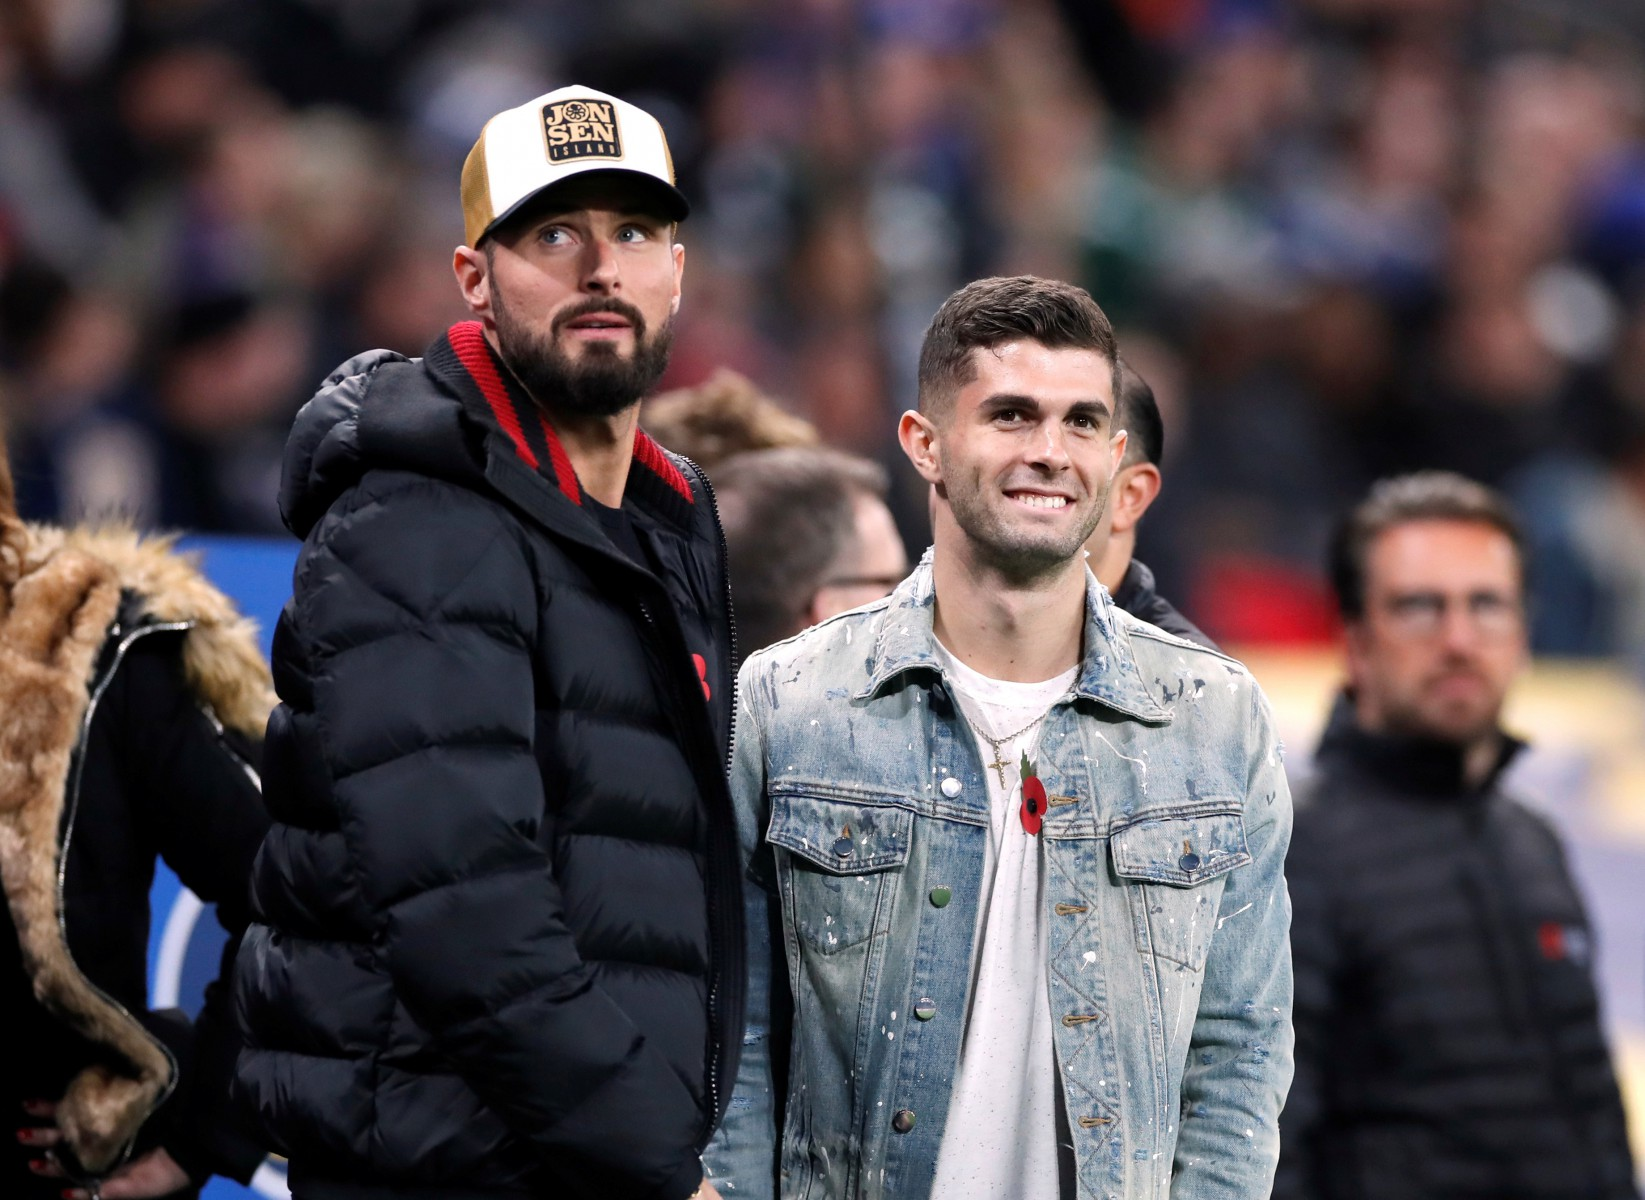 Chelsea pair Olivier Giroud and Christian Pulisic celebrated the win over Burnley by heading to the NFL